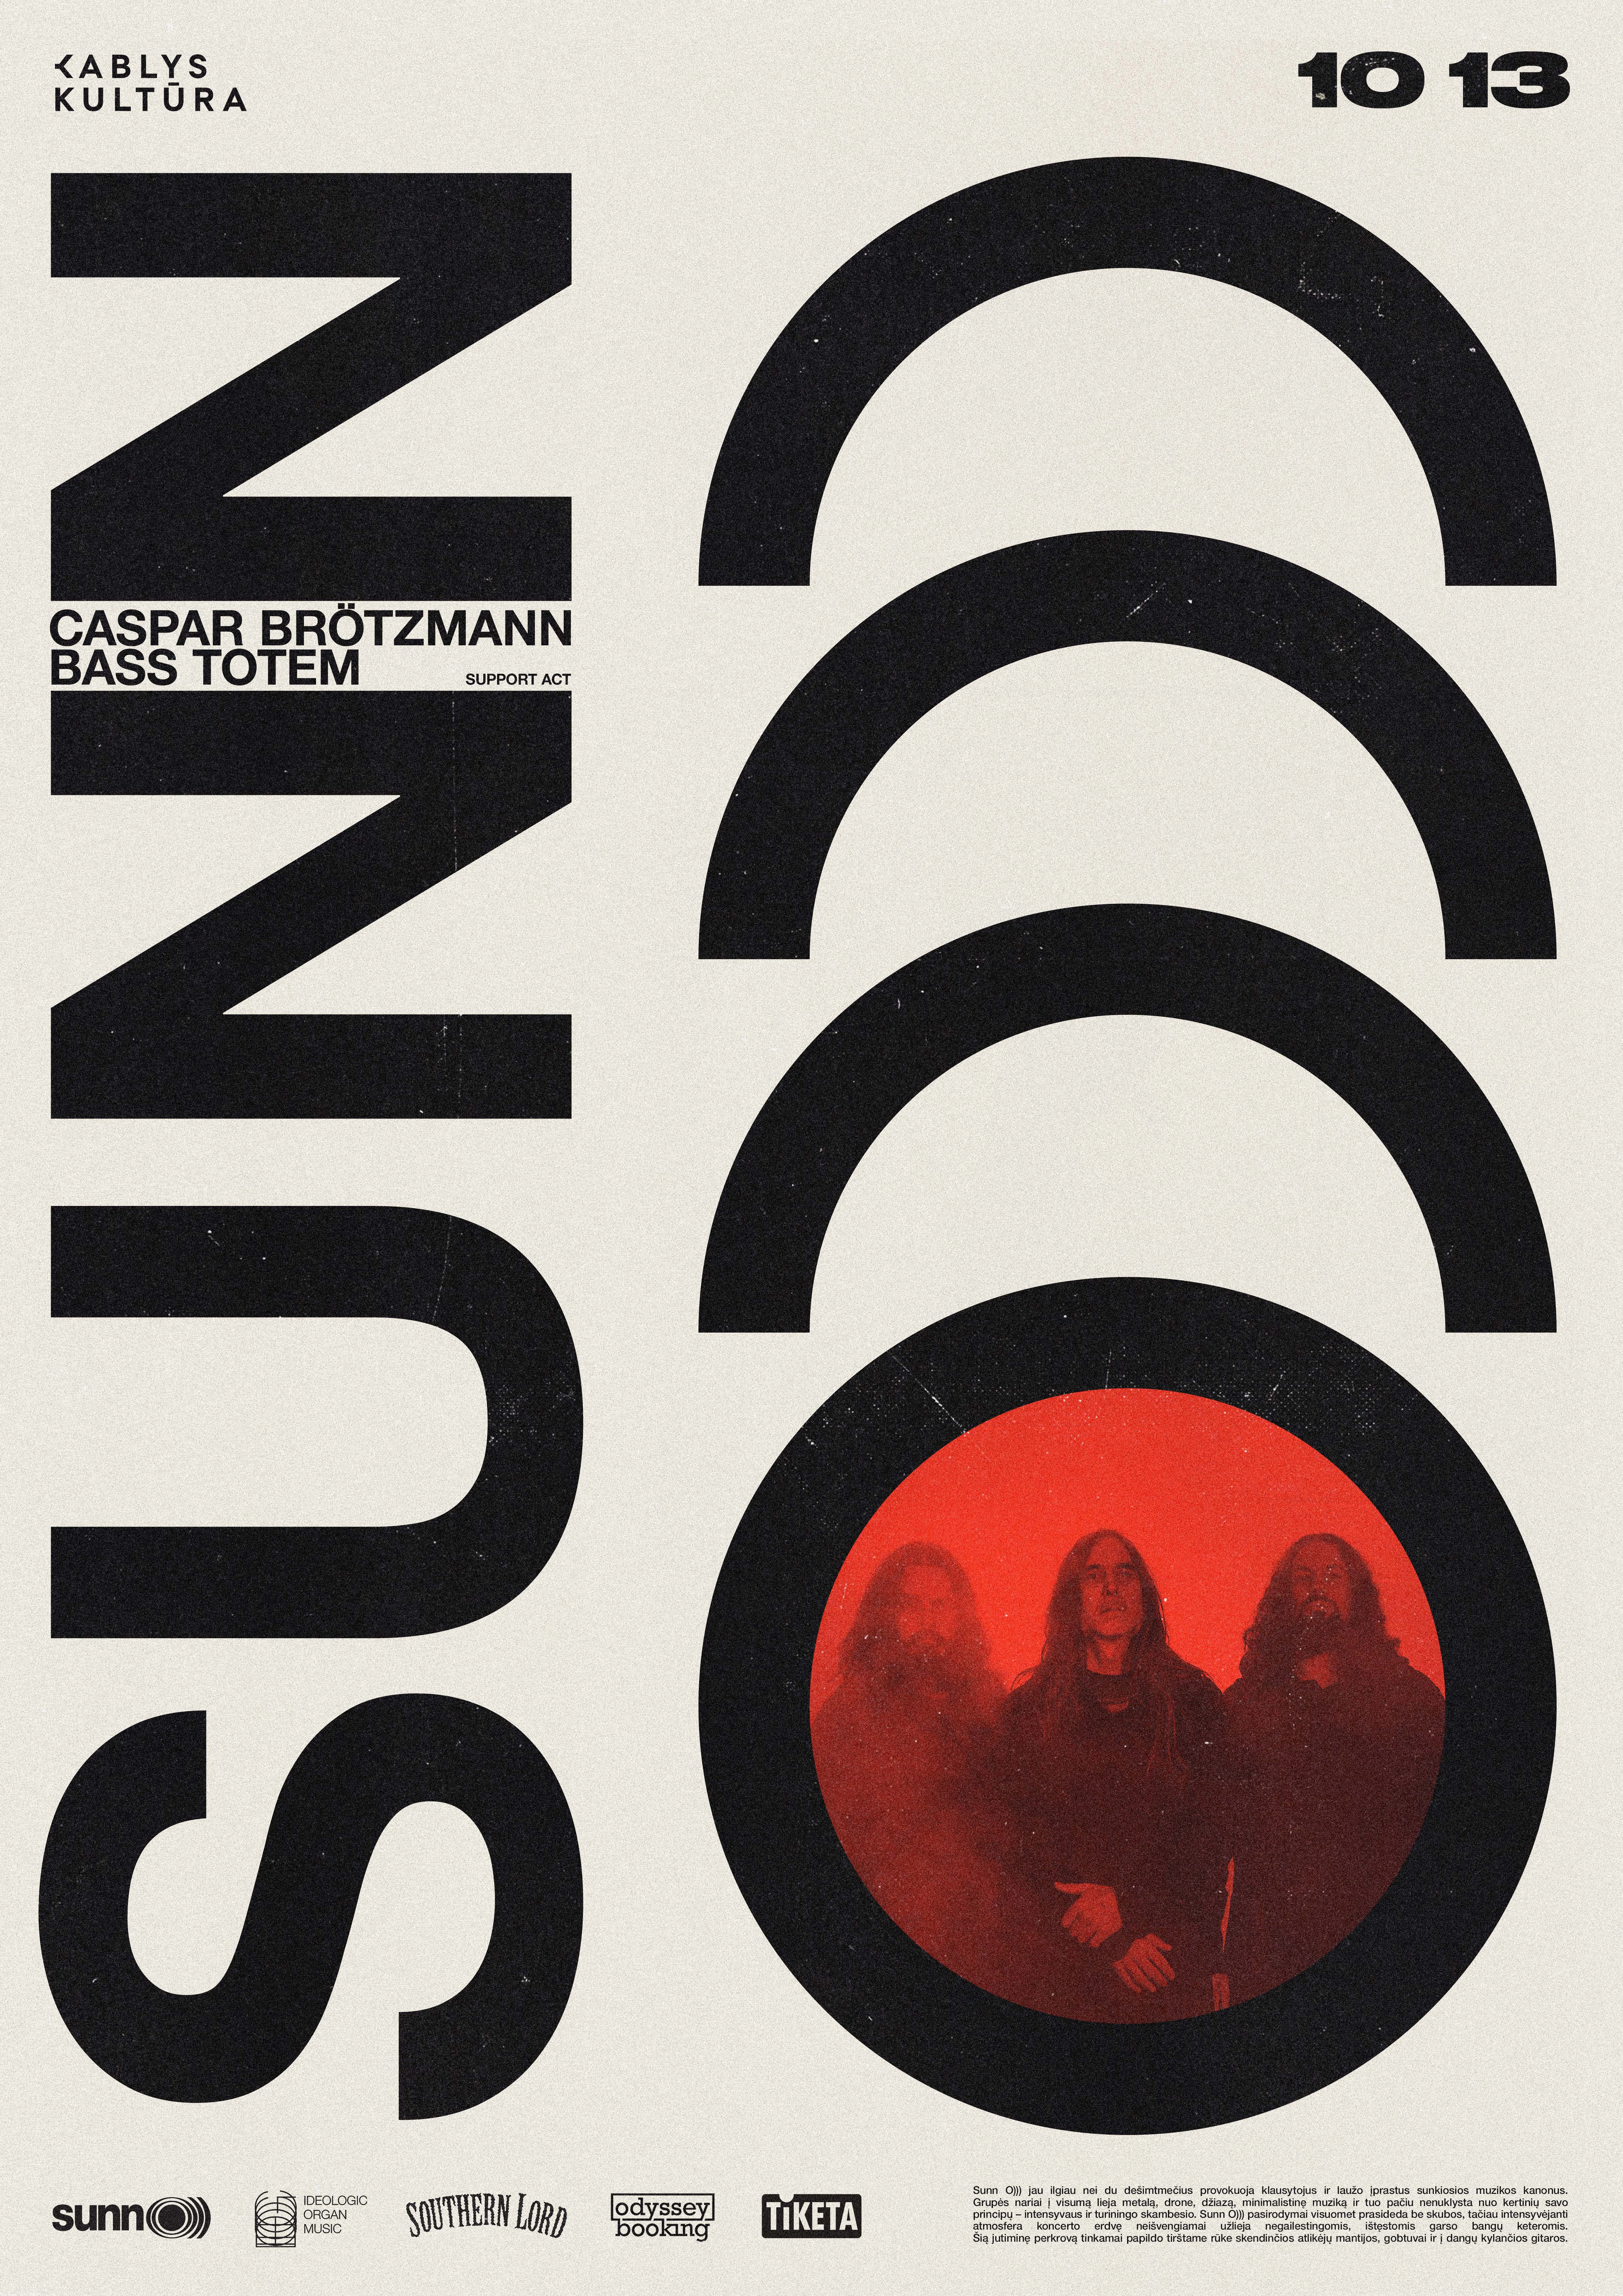 Sunn O))) Live at Kablys